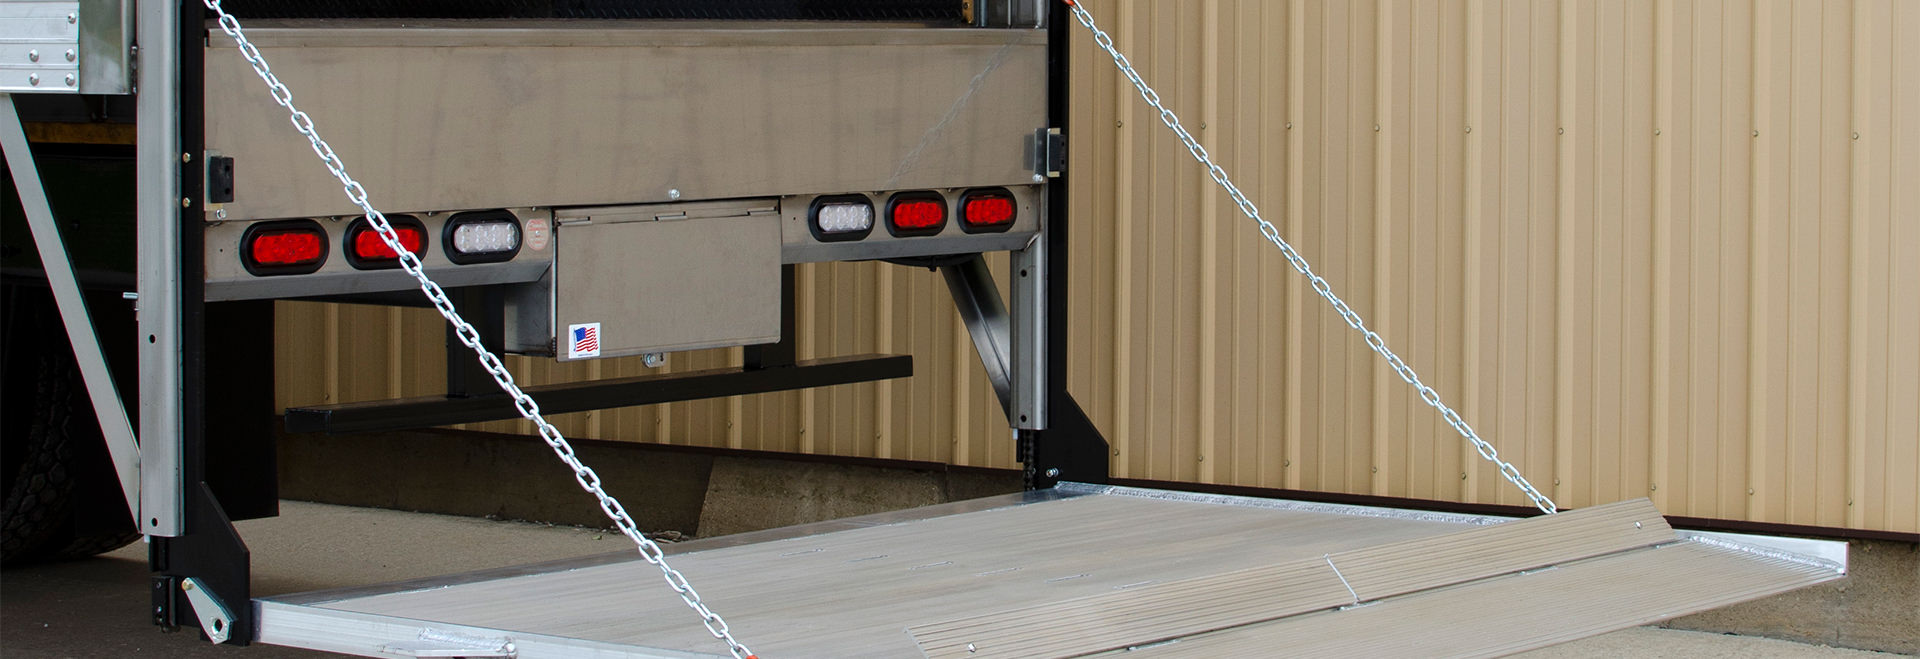 Hydraulic Lift Gates | Lift Gates For Trucks And Tailgates